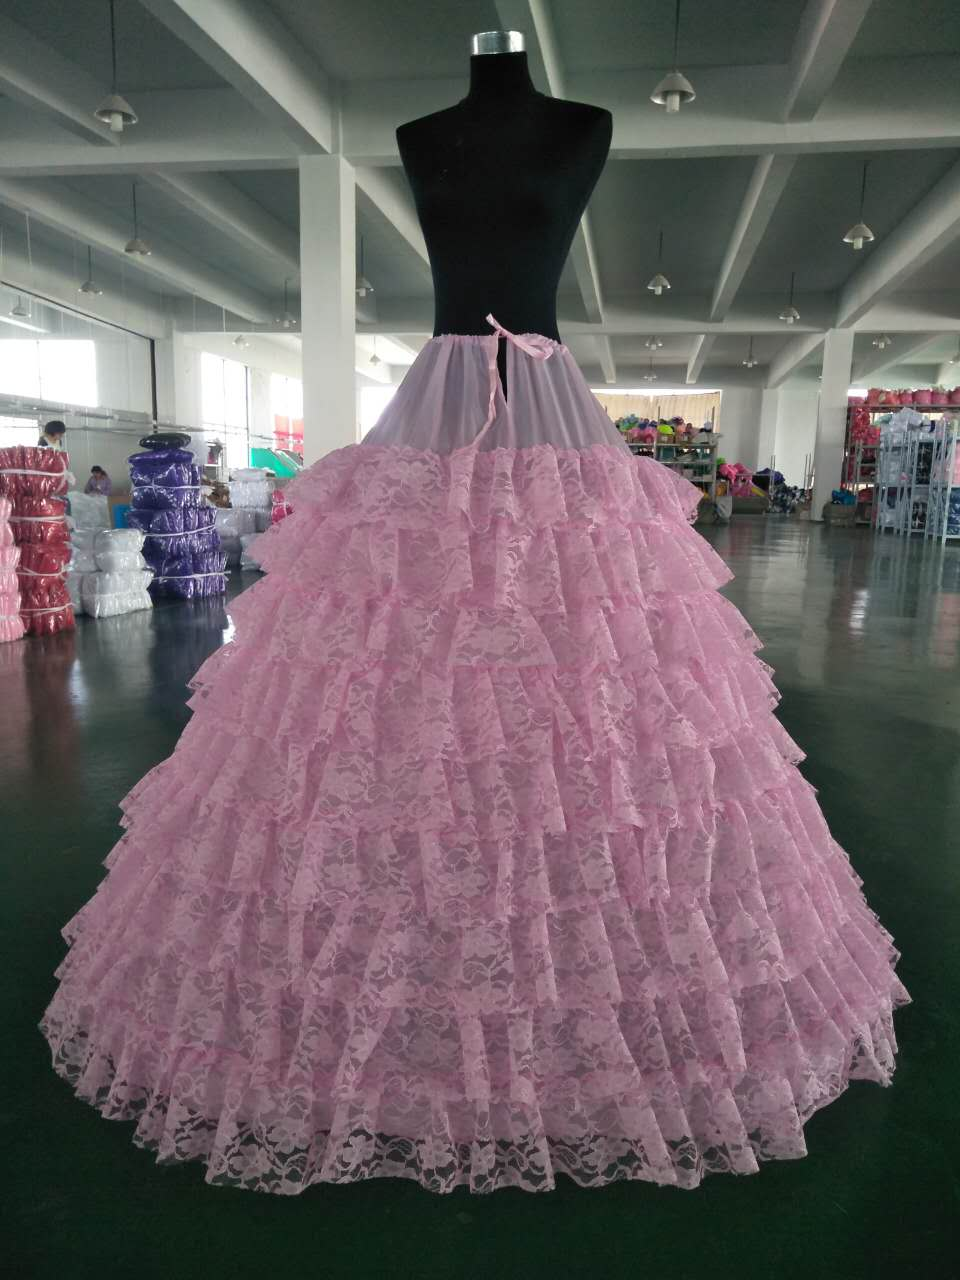 6 Hoops 9 Layers Of Lace Wedding Petticoat Long Big Tulle Skirts Womens Underskirt For Wedding Dress In Stock